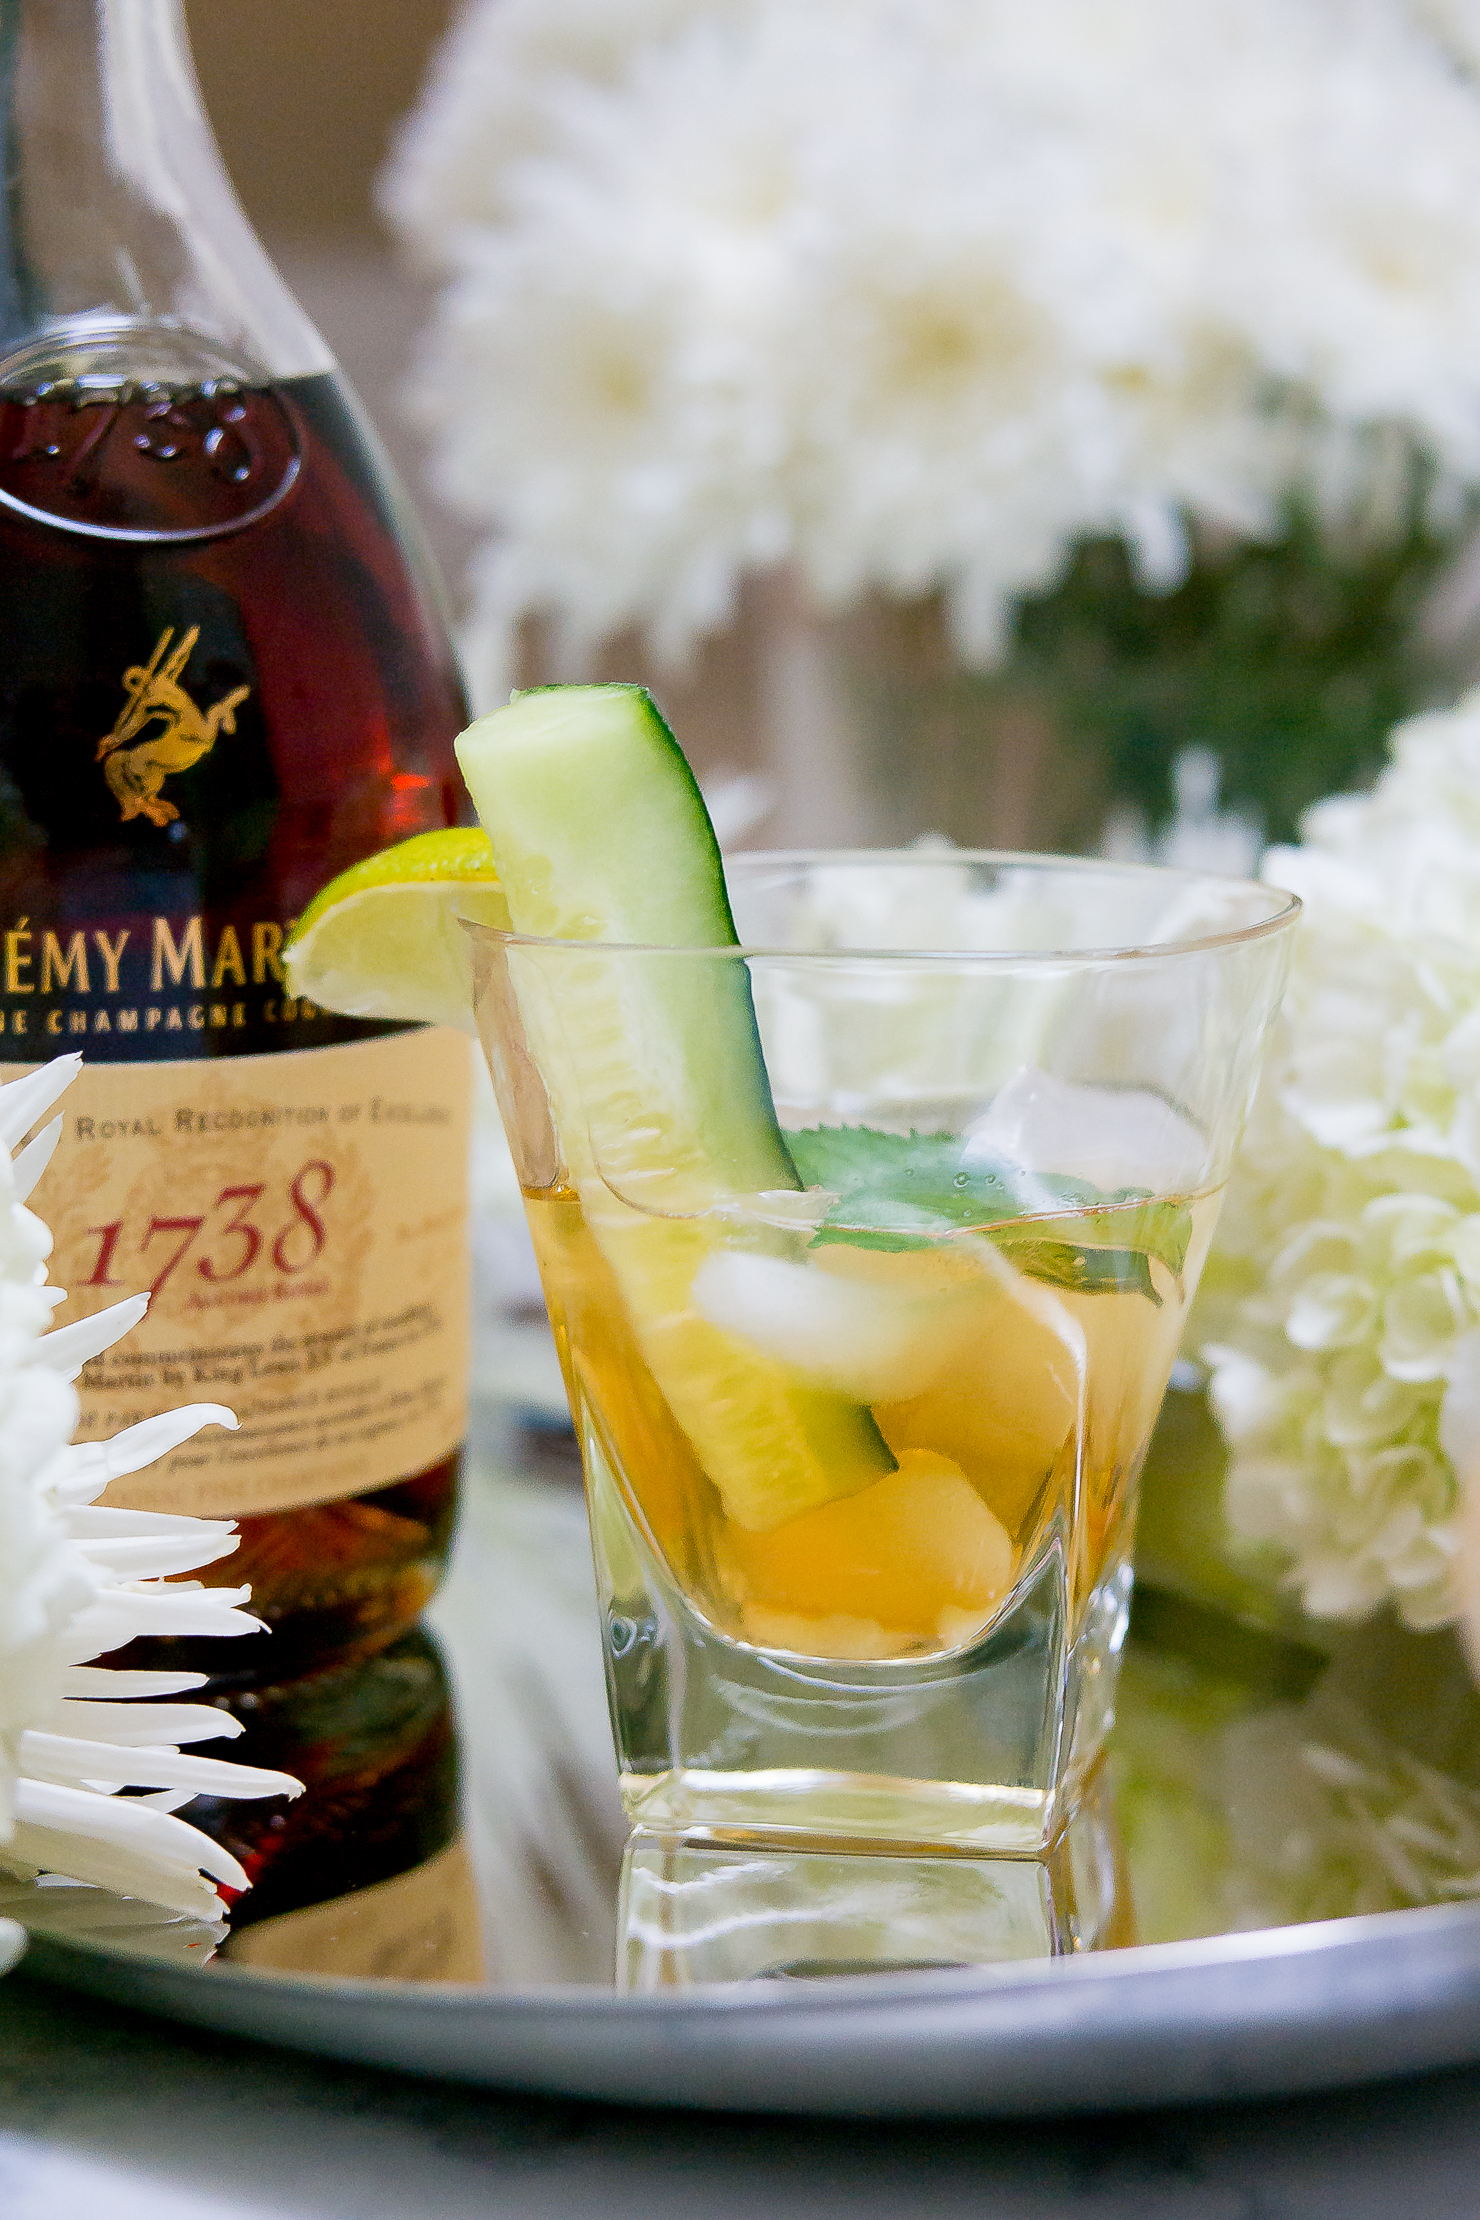 Remy-Martin-Cognac-cocktail-recipe-mentorship-sweepstakes